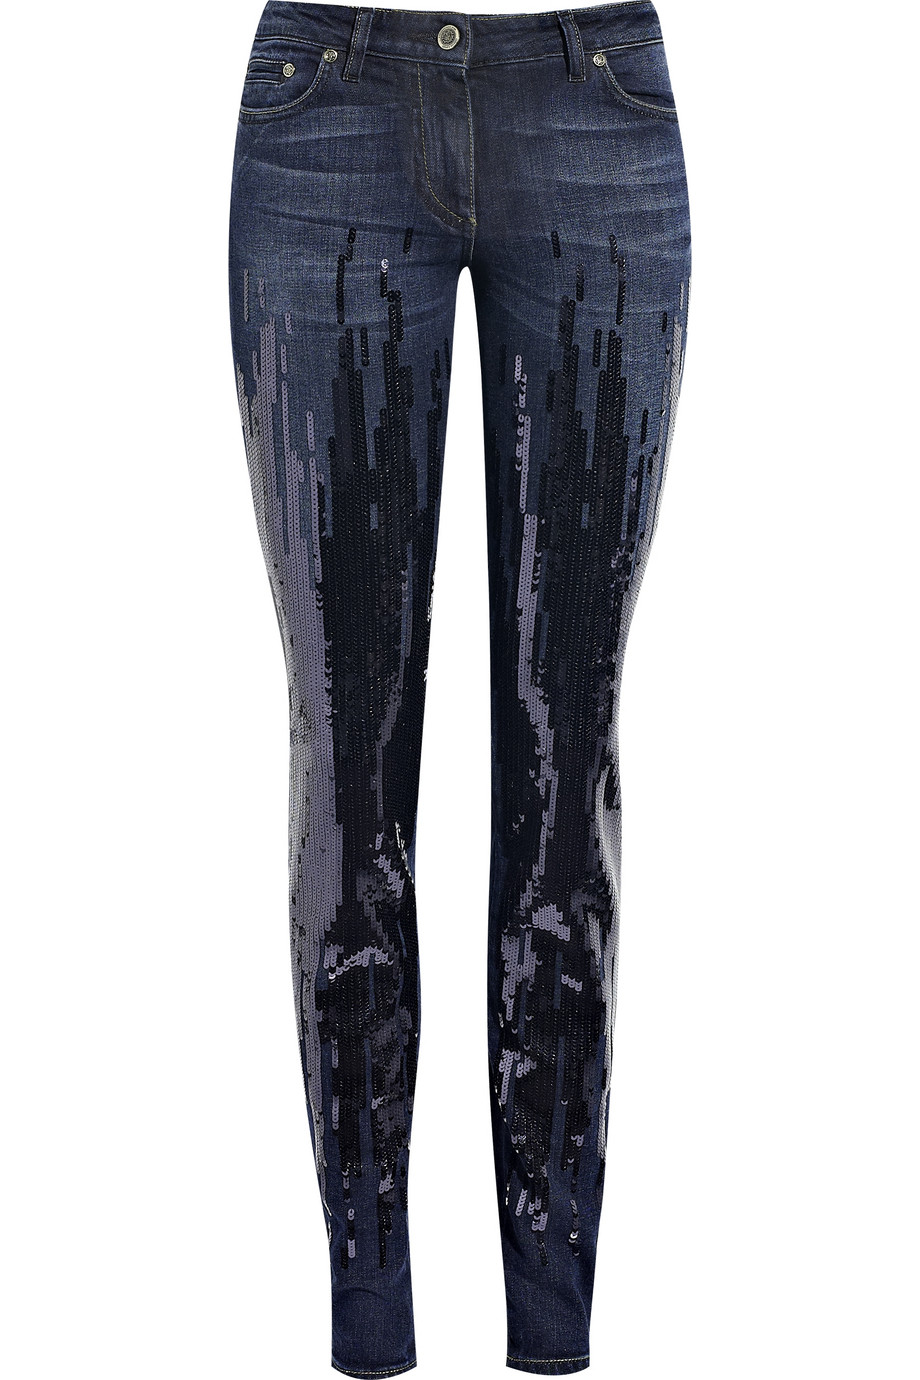 Pepe Jeans For Women